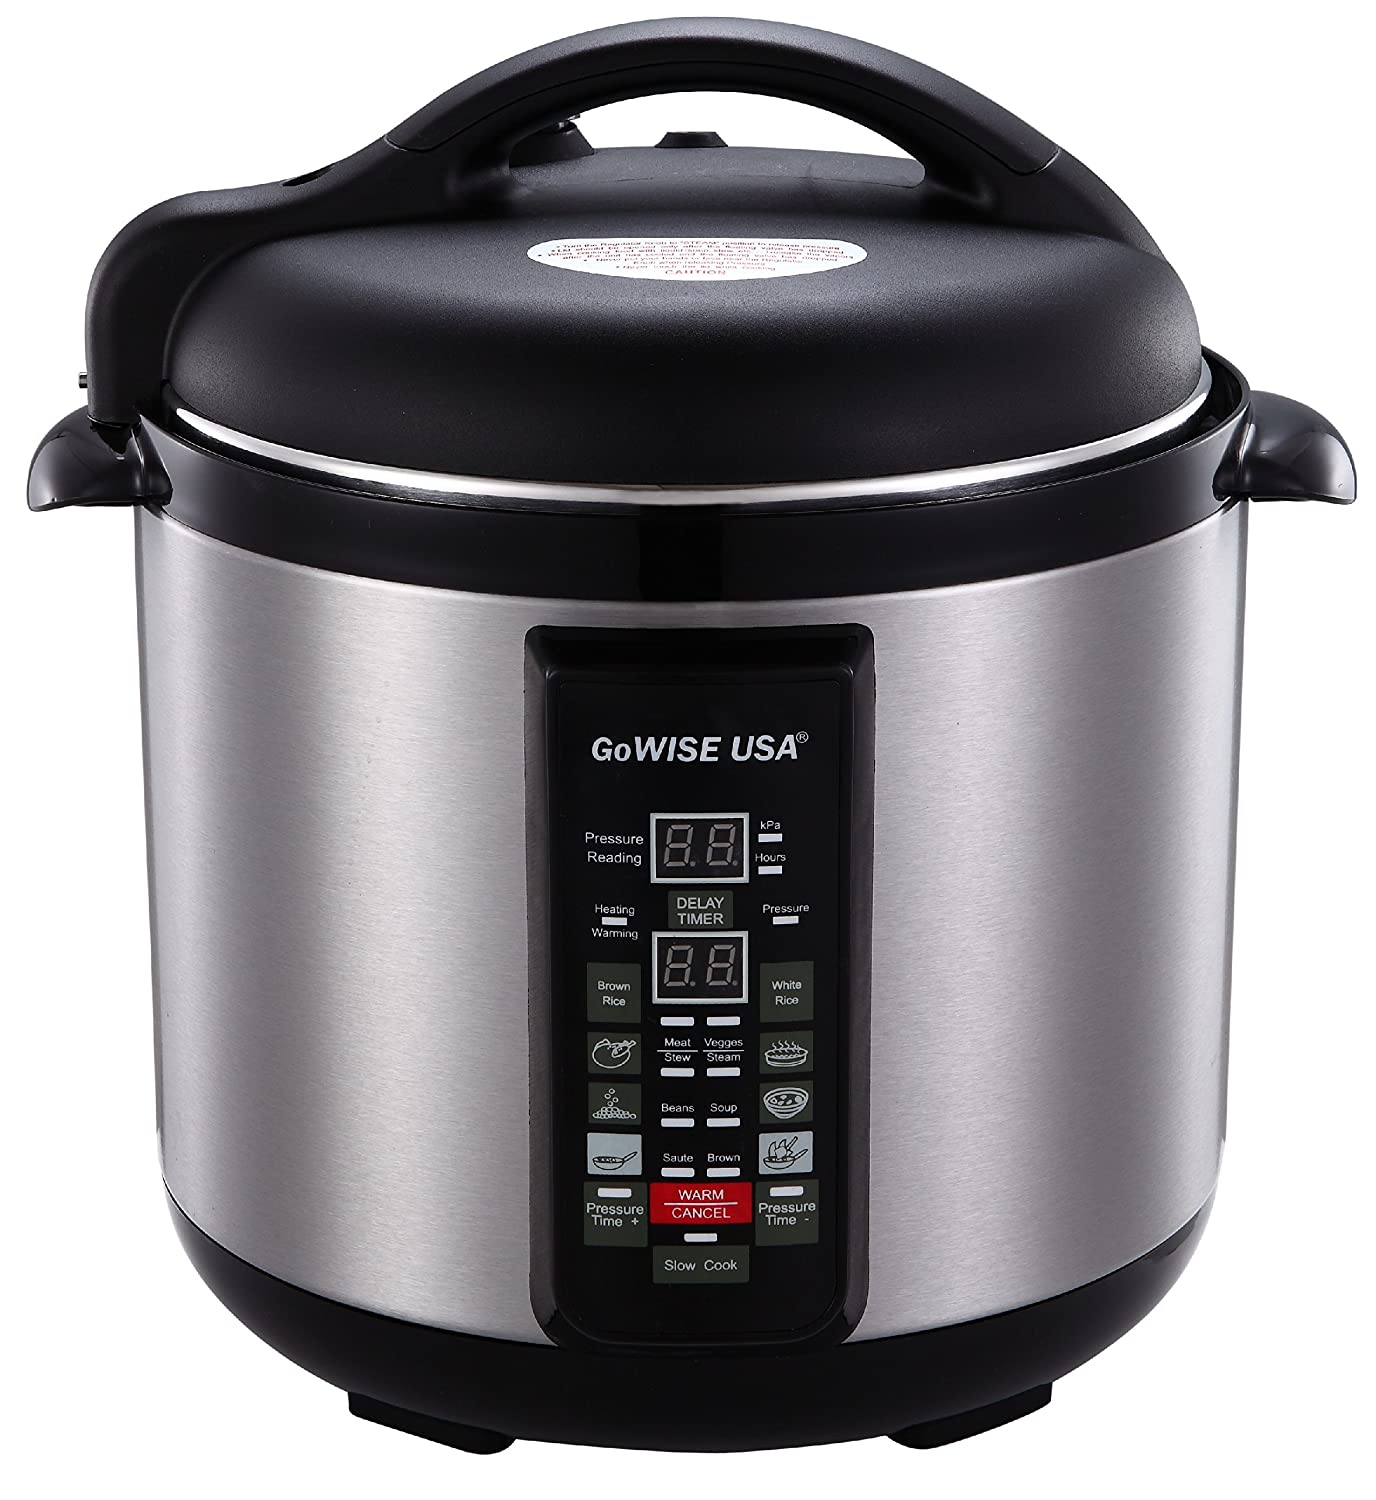 stainless steel cooking pot 6 in 1 8 qt review. Black Bedroom Furniture Sets. Home Design Ideas